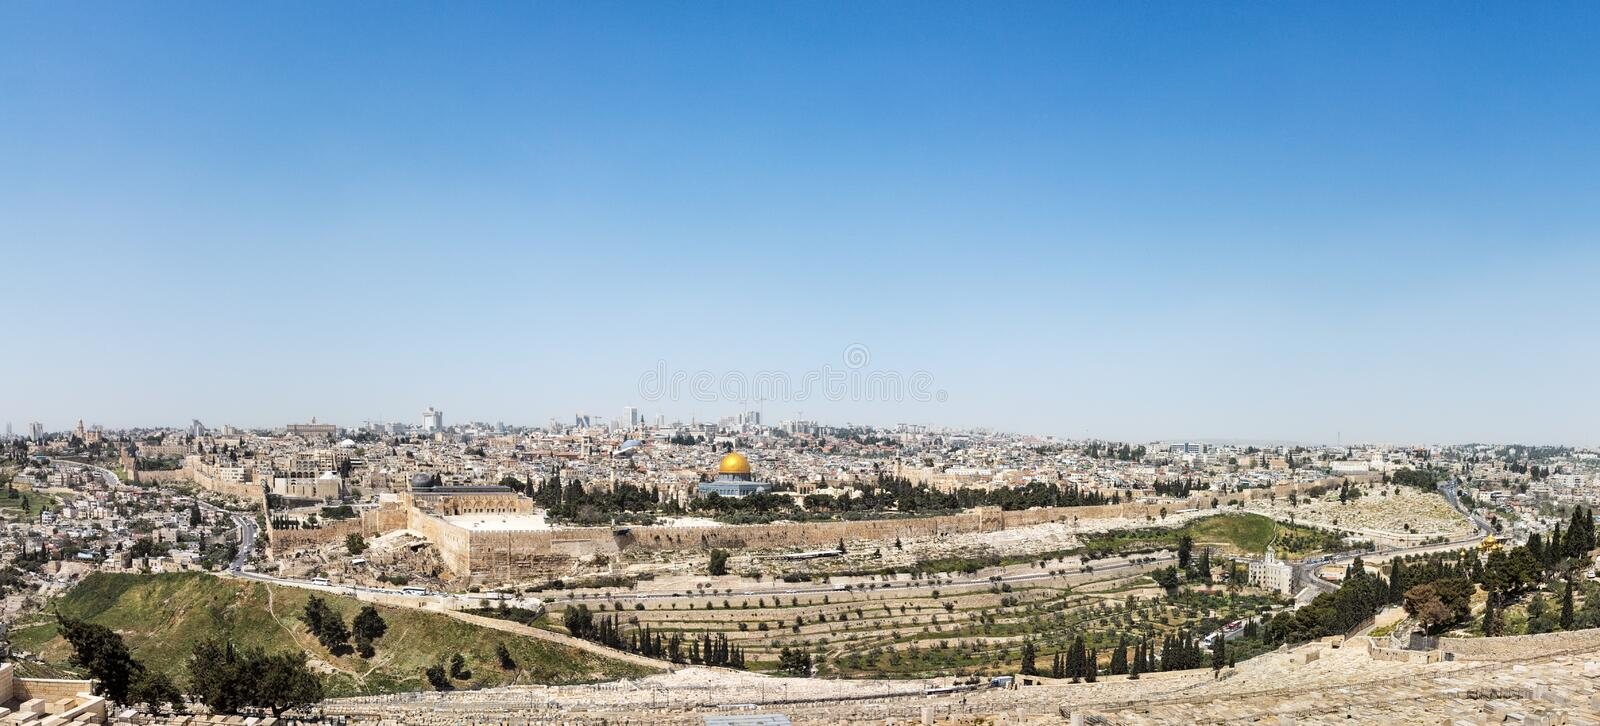 Aerial panorama of the Jerusalem Old City royalty free stock photos